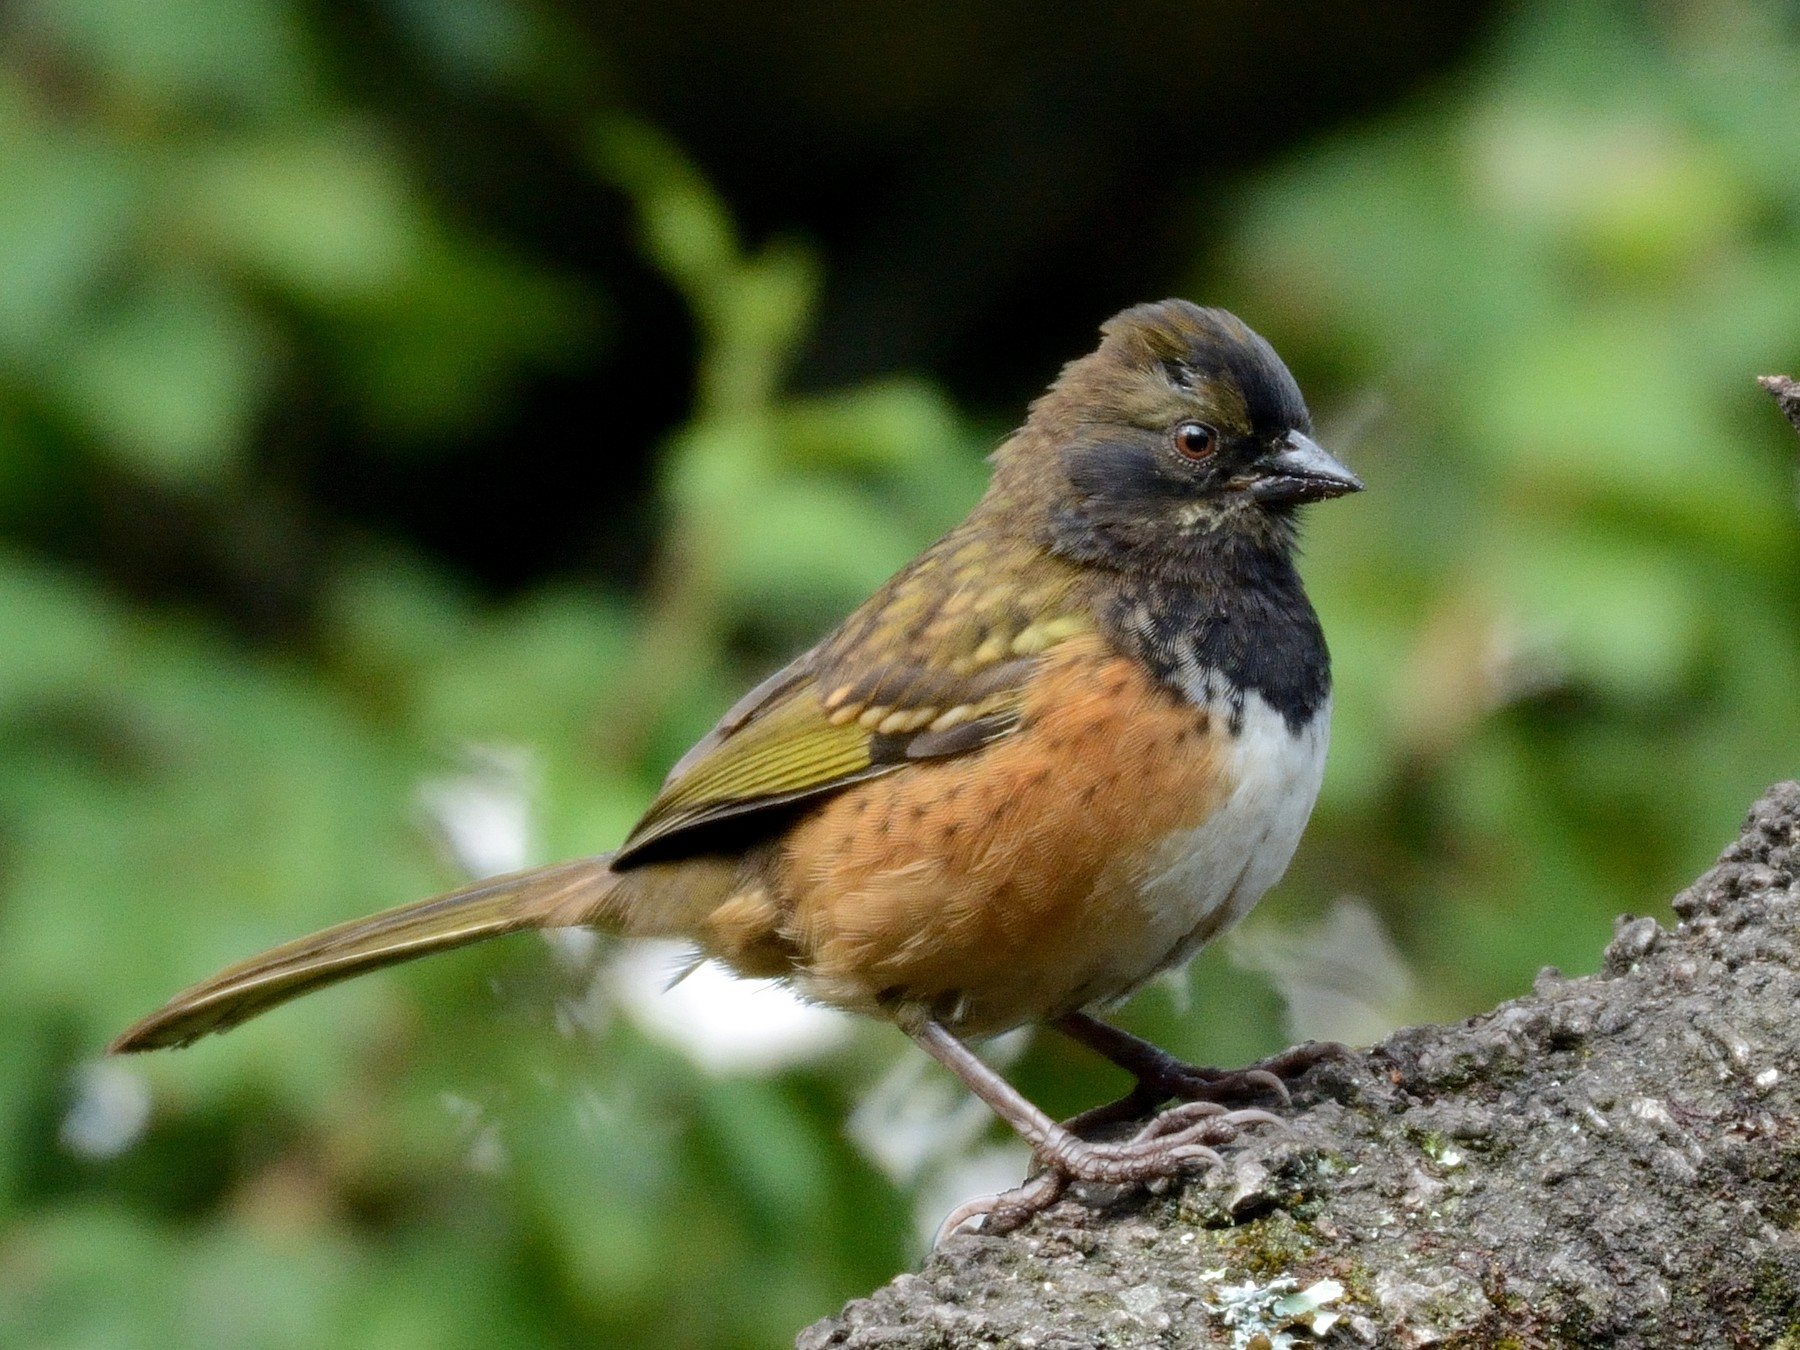 Spotted Towhee - Miguel Angel Aguilar (Birdnomad)